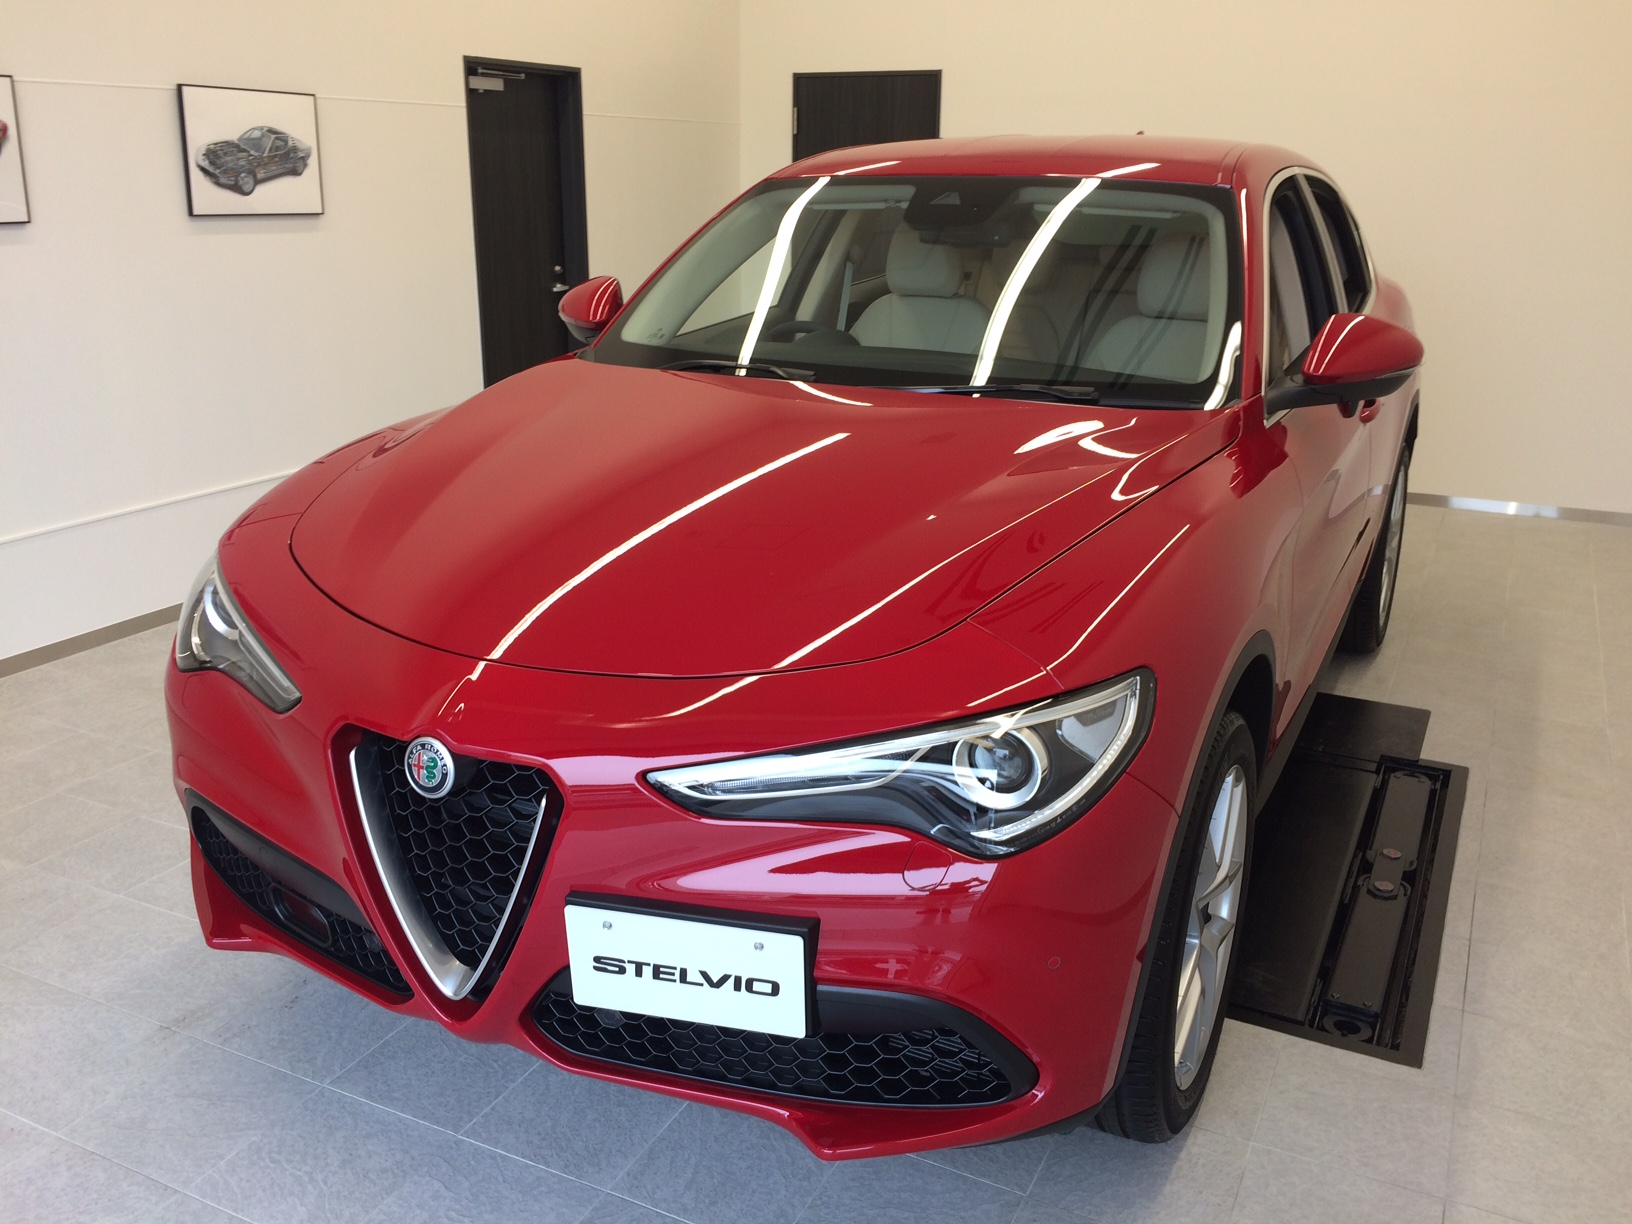 STELVIO 2.0 TURBO Q4 FIRST EDITION